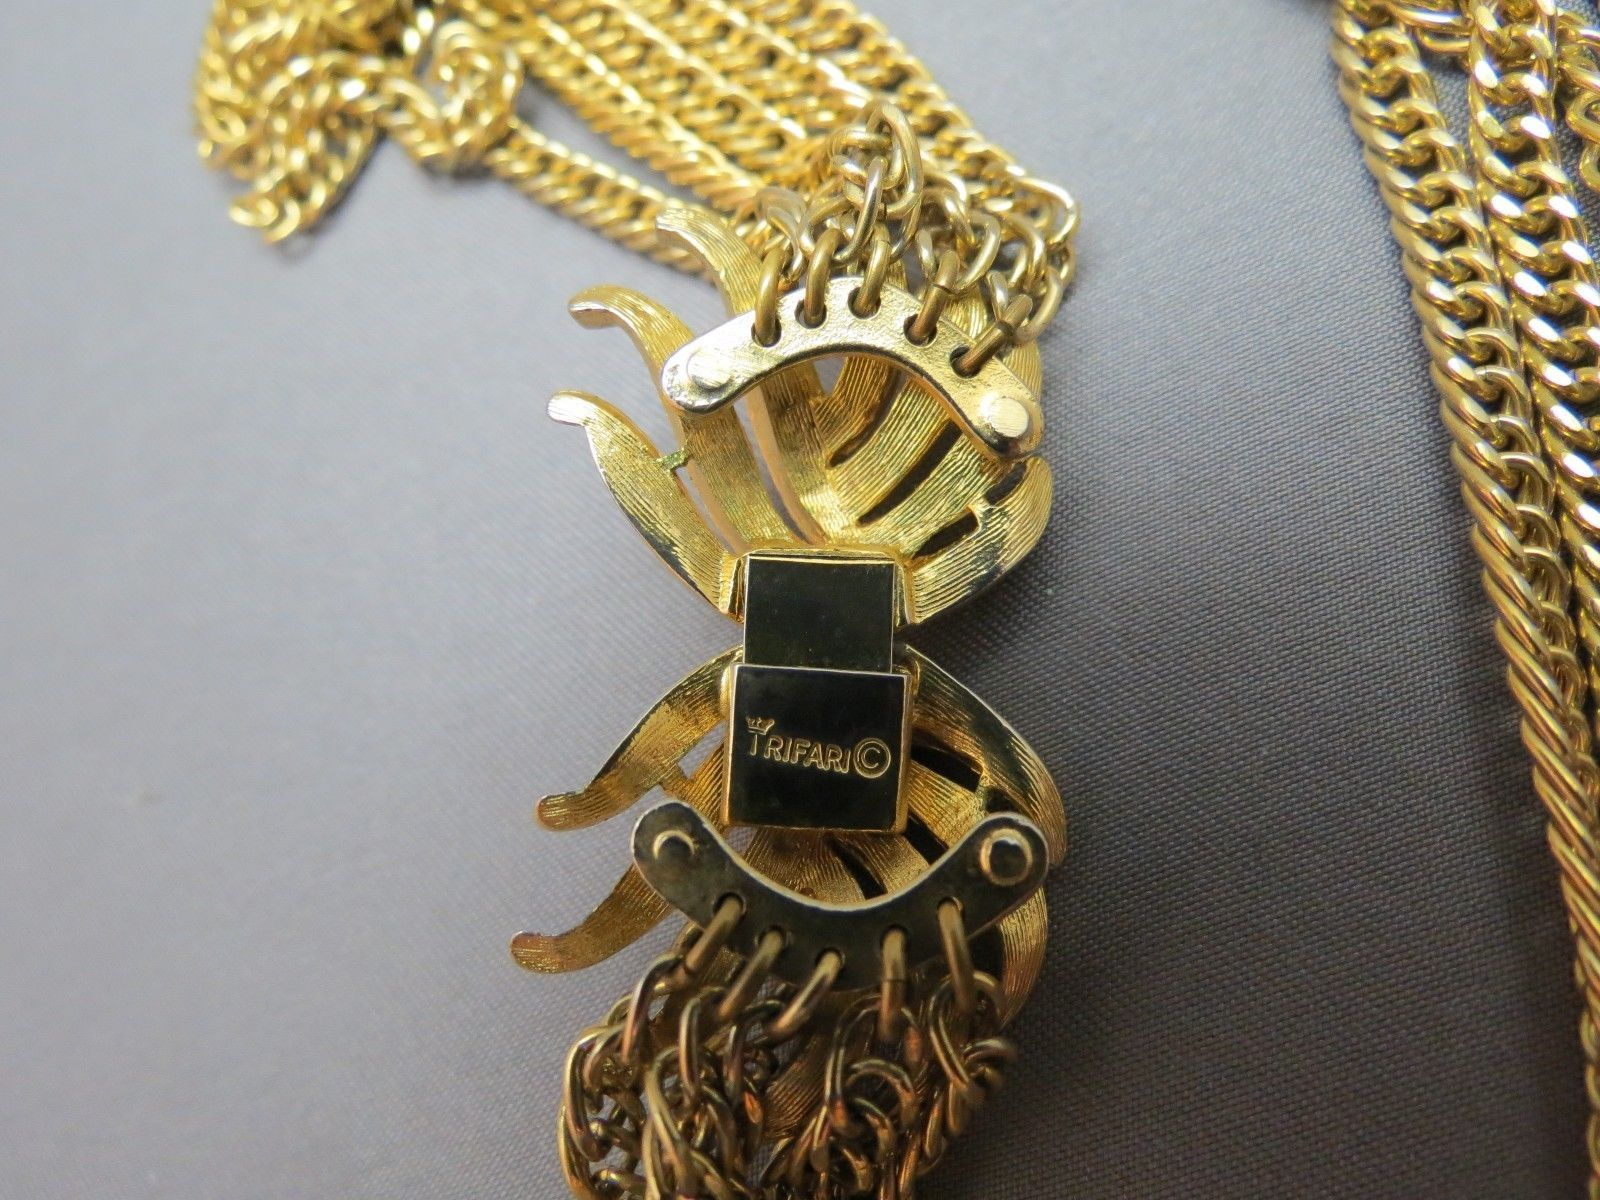 VTG Couture Trifari Necklace Mult Chain Gold Plated Designer Fancy Leaf Catch image 4